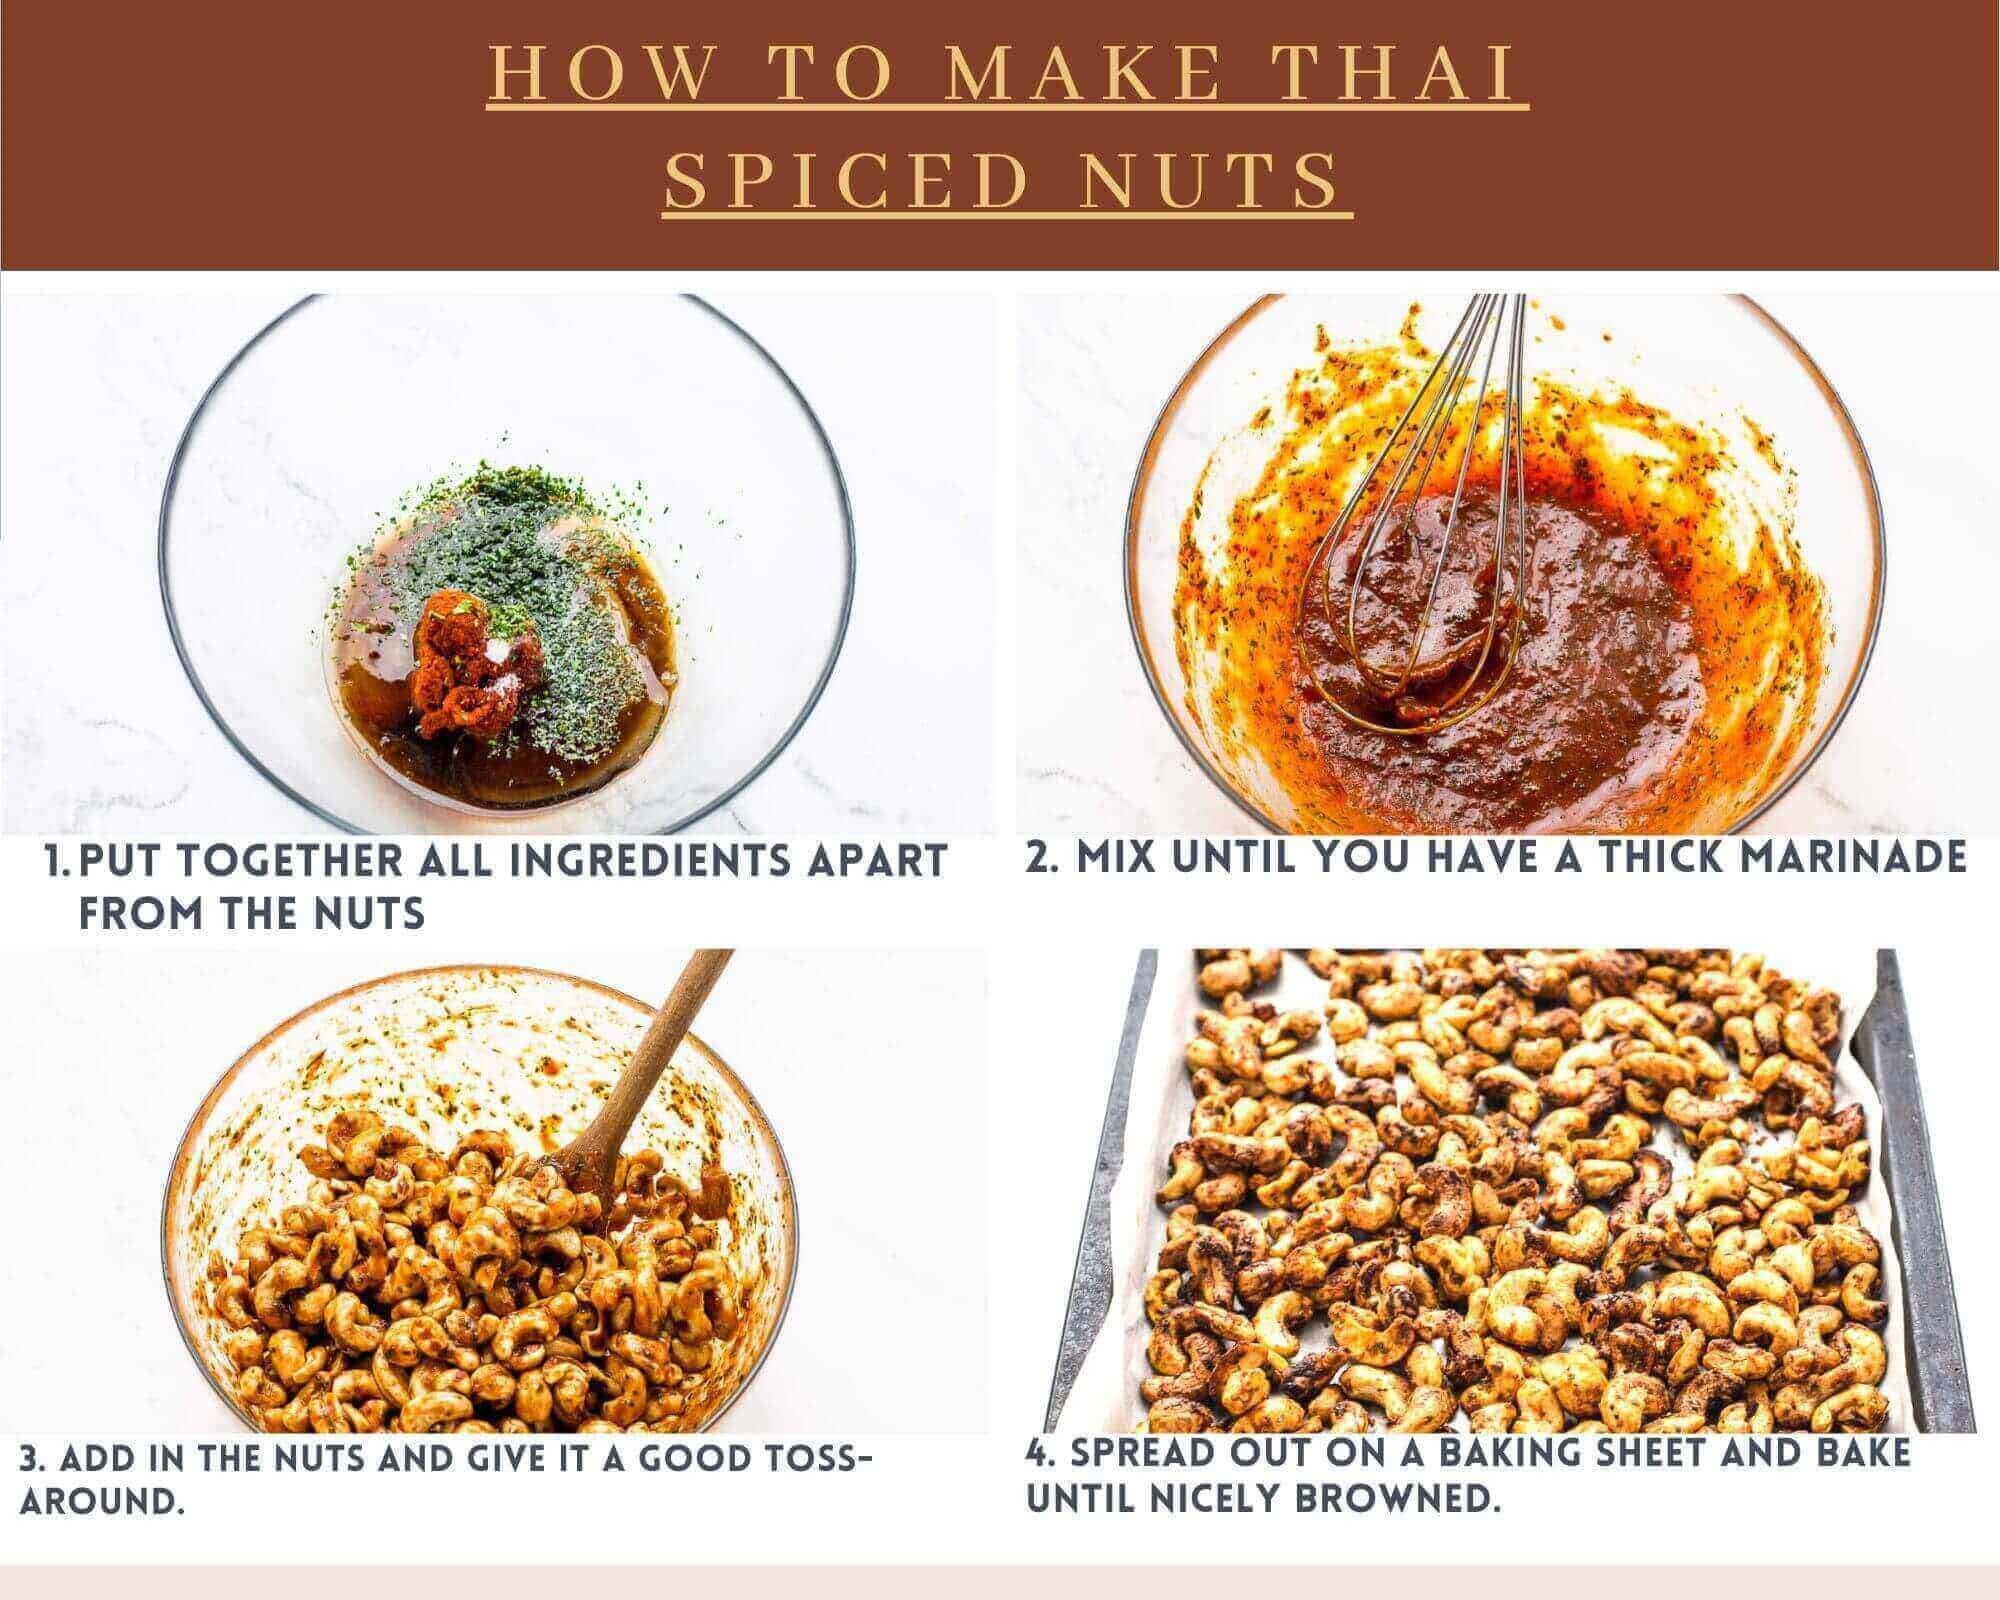 how to make Thai spiced nuts